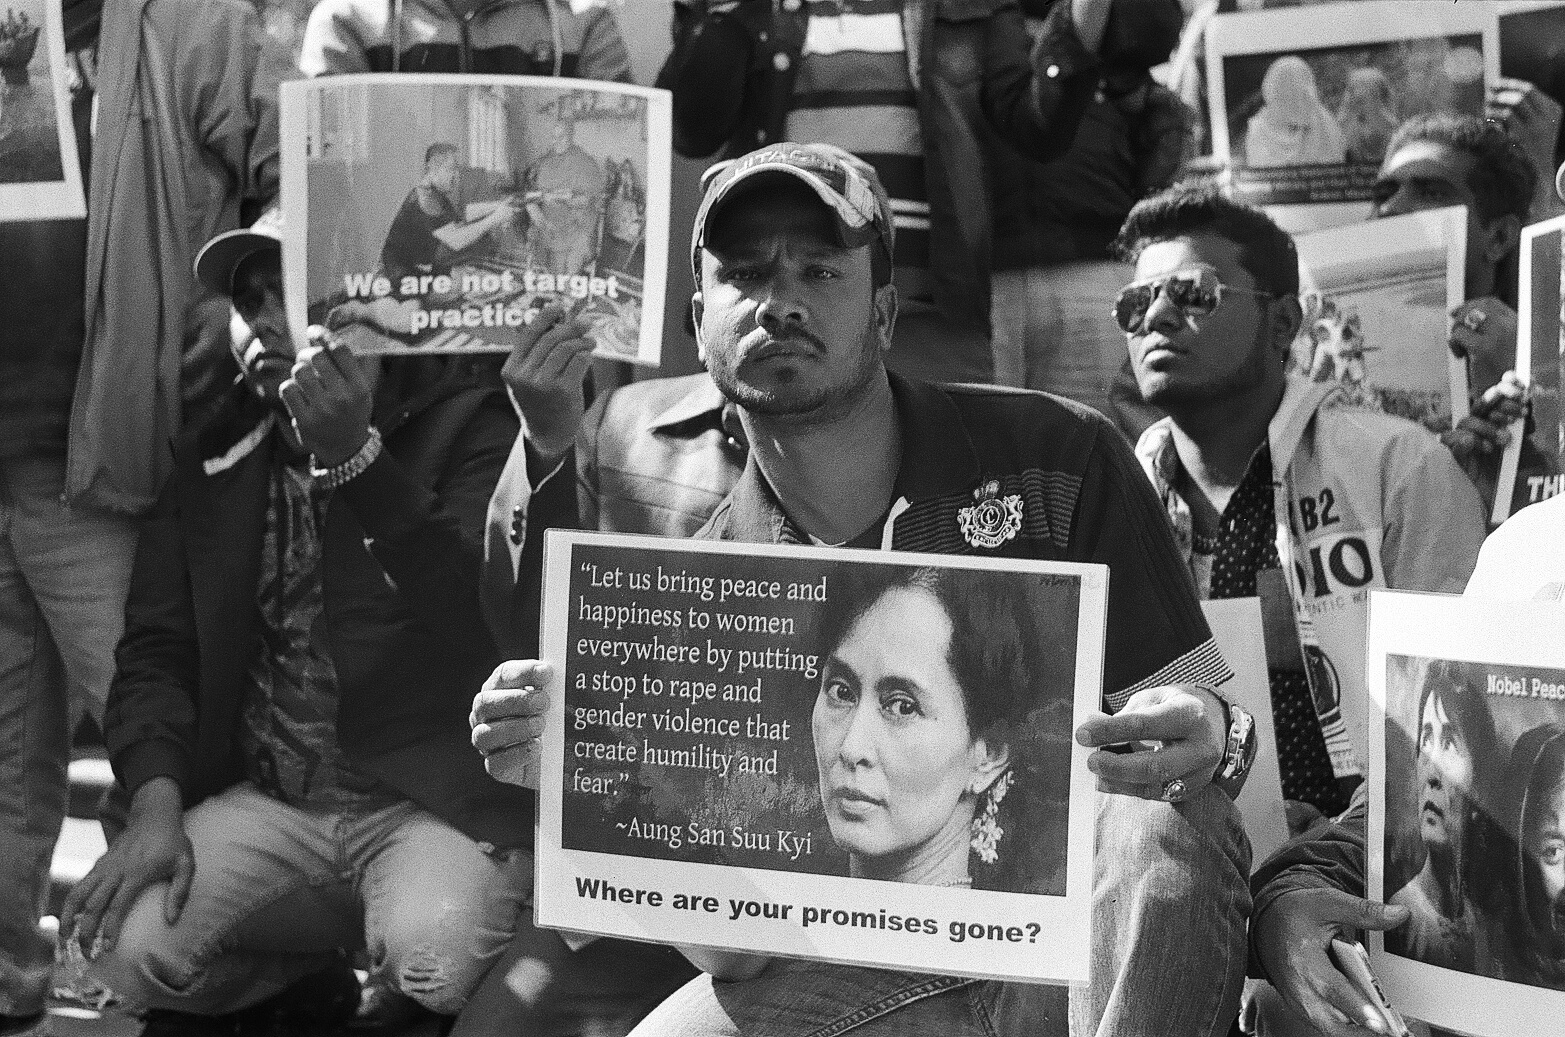 Protesters' signs at the Rohingya vigil. Photo: Ali MC